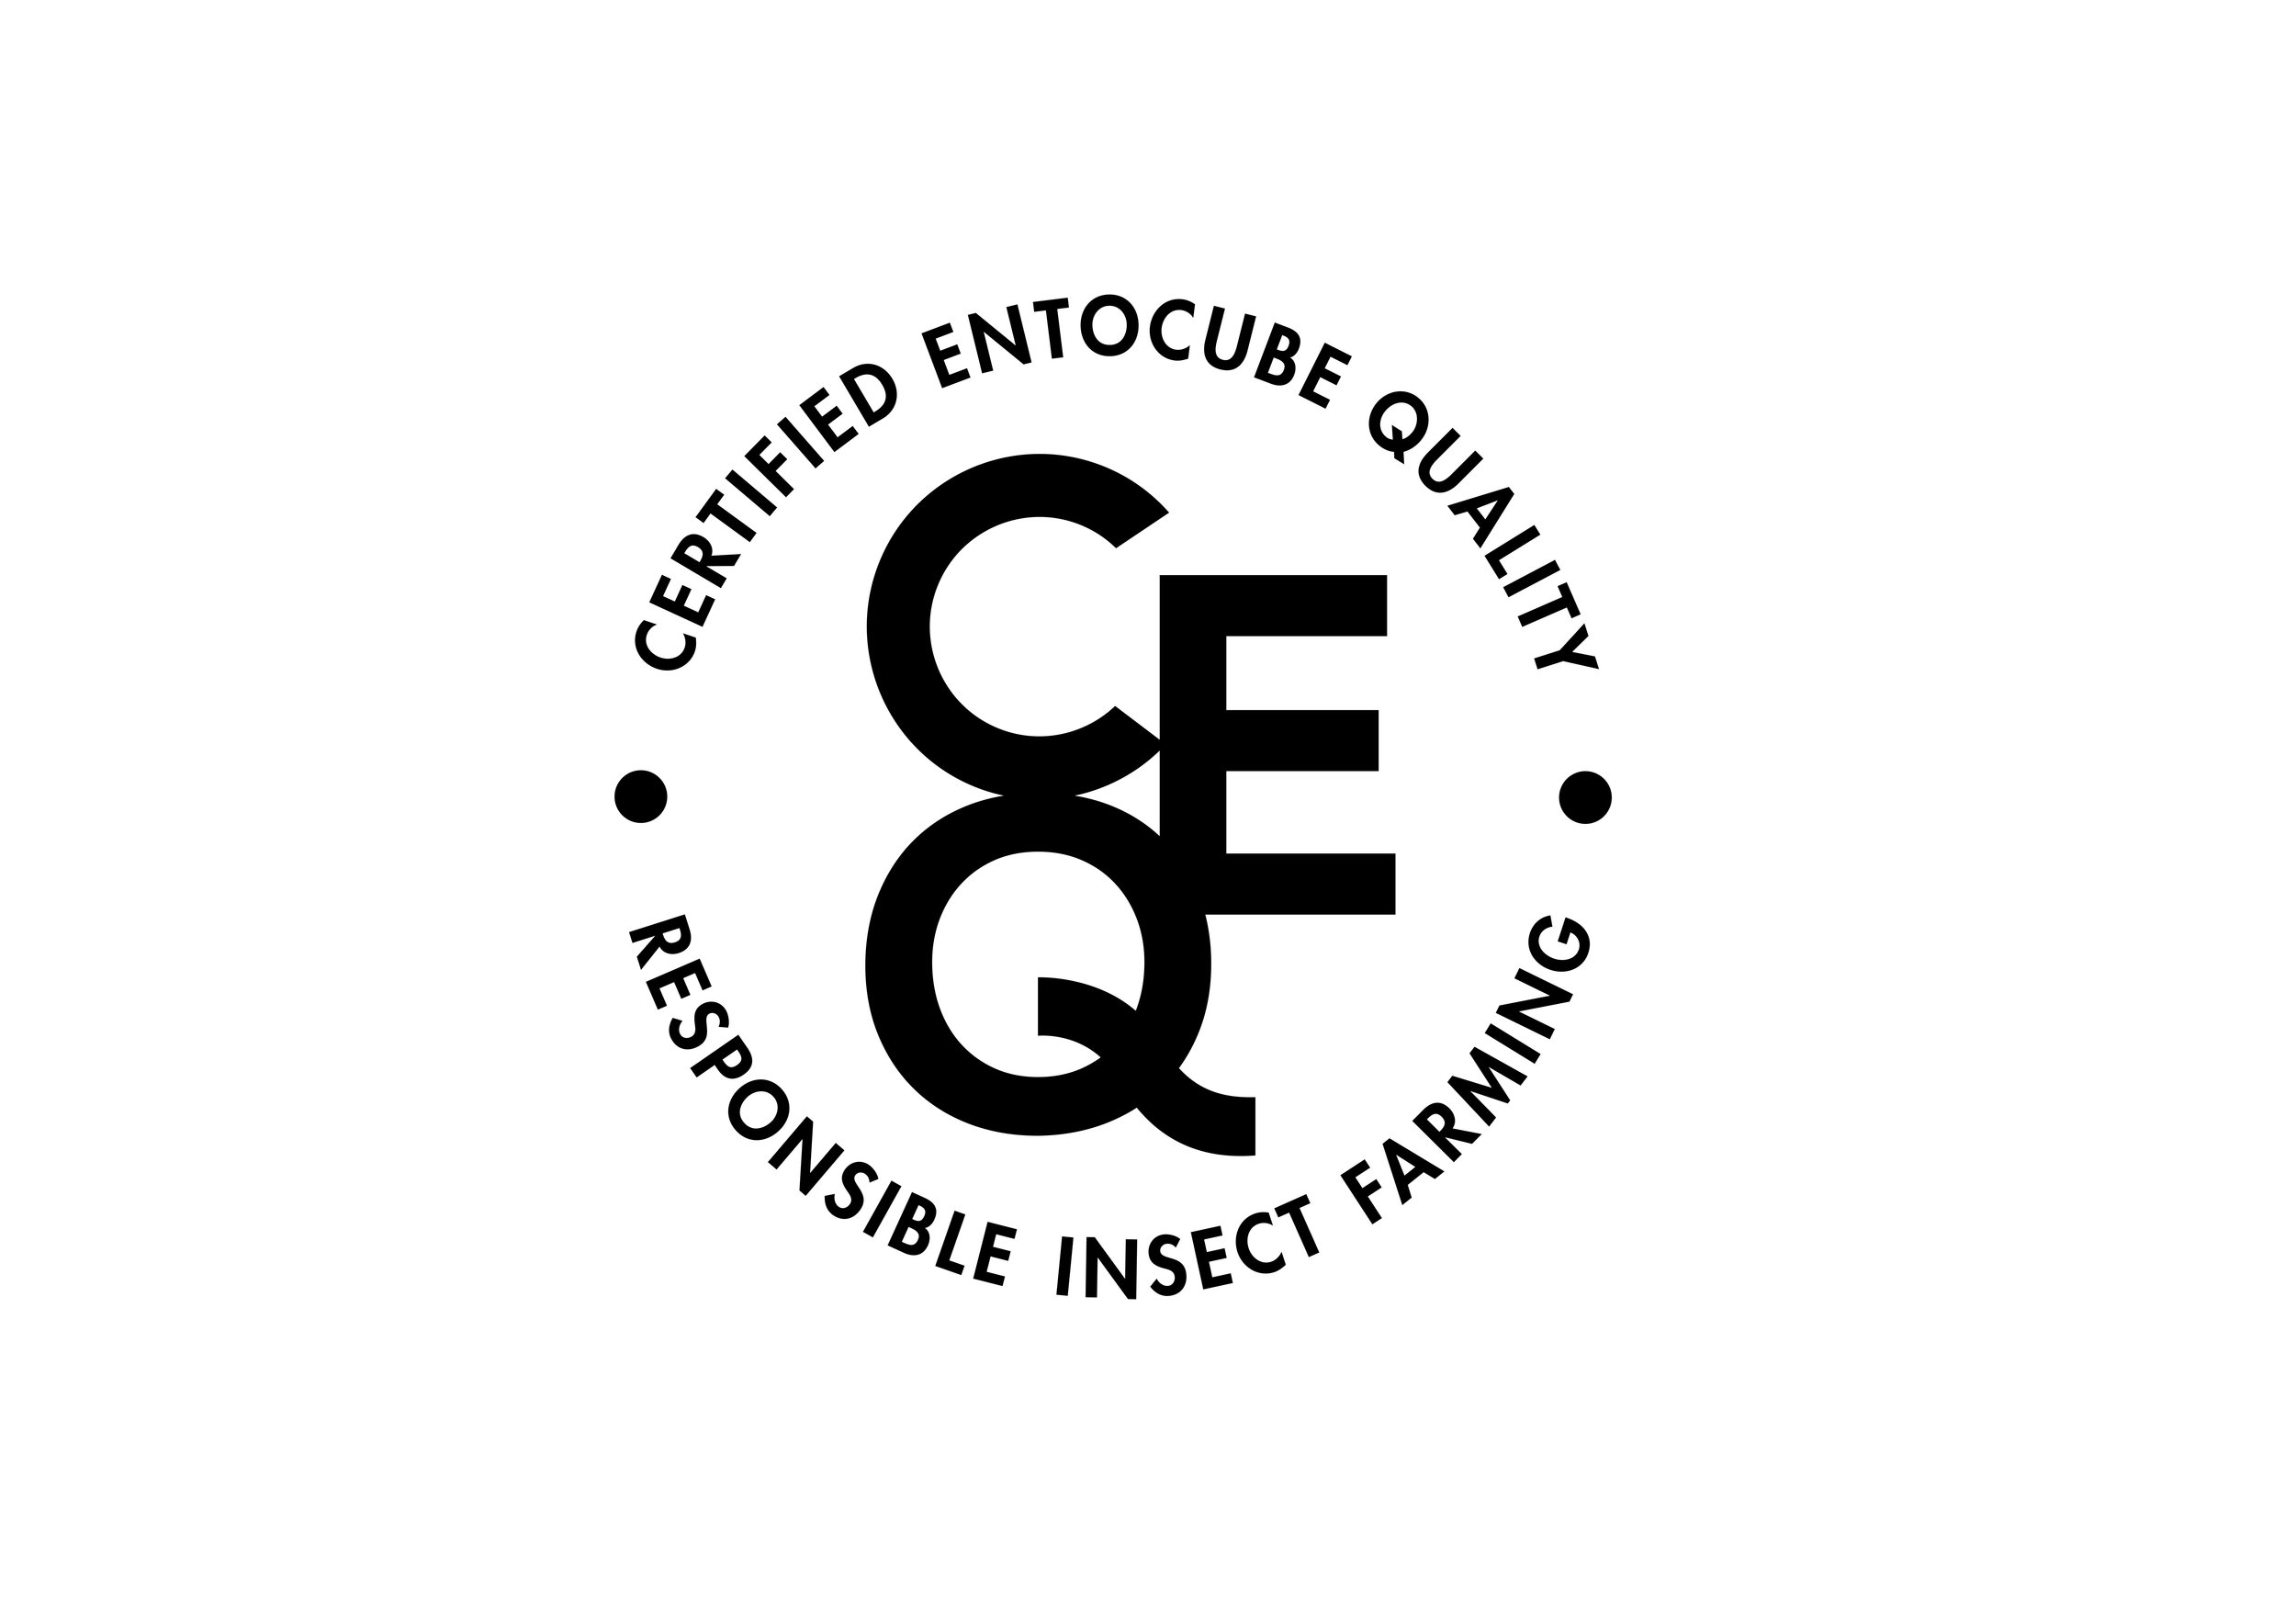 Certified_Entocube_Quality_FINAL copy.jpg